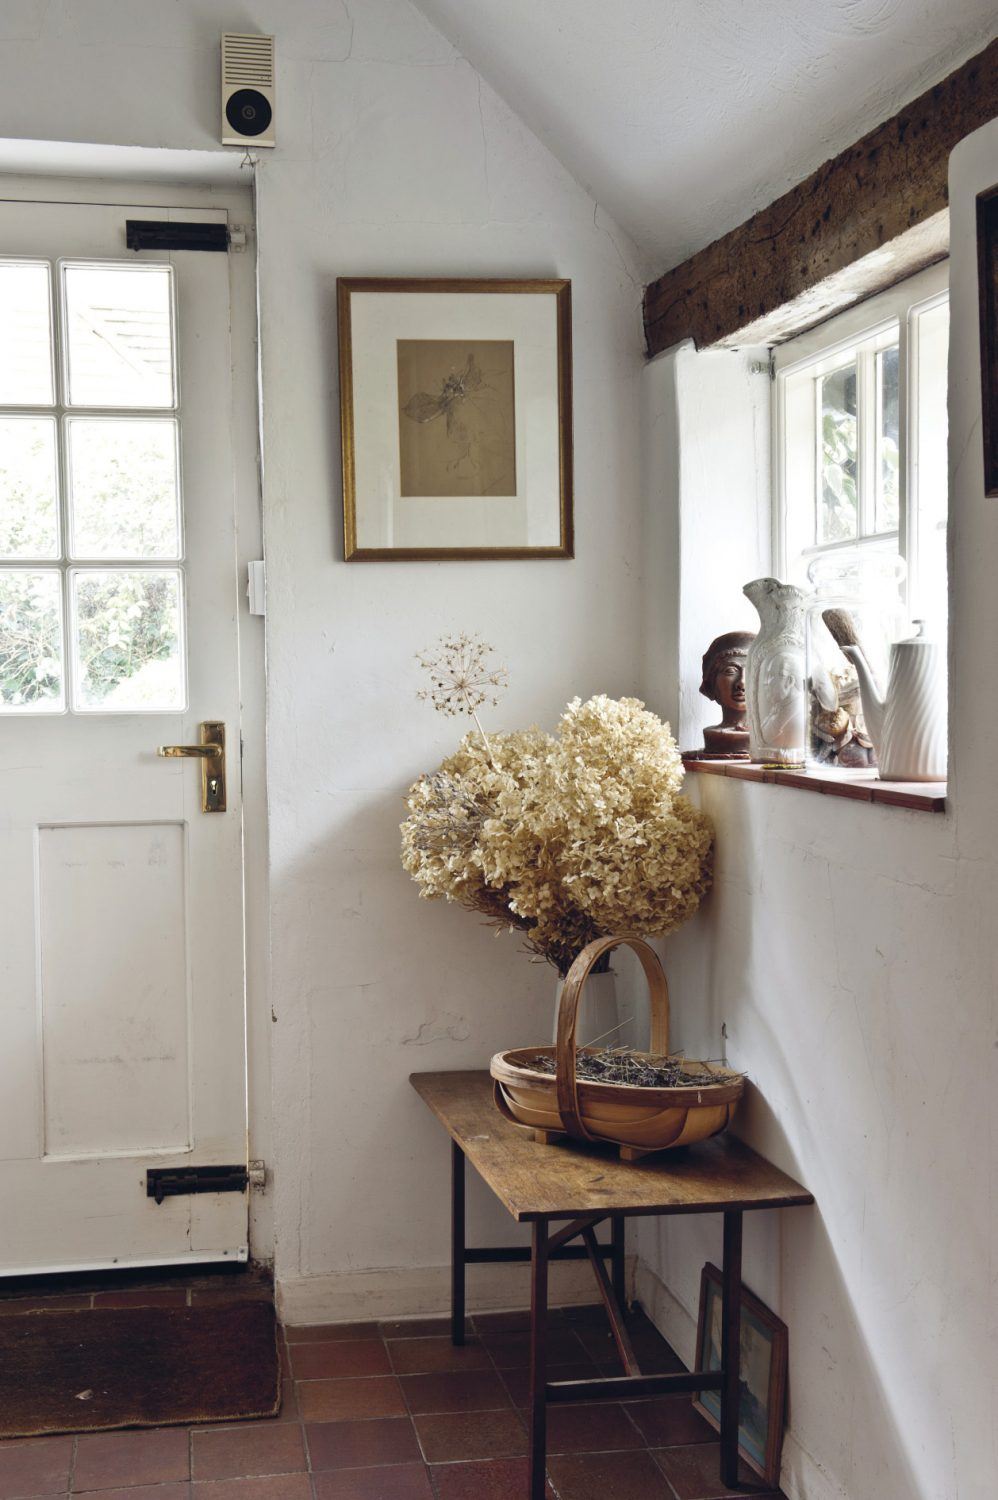 The entrance hall to Nancy Nicholson's home is enticingly adorned with intriguing objects and 'finds'.